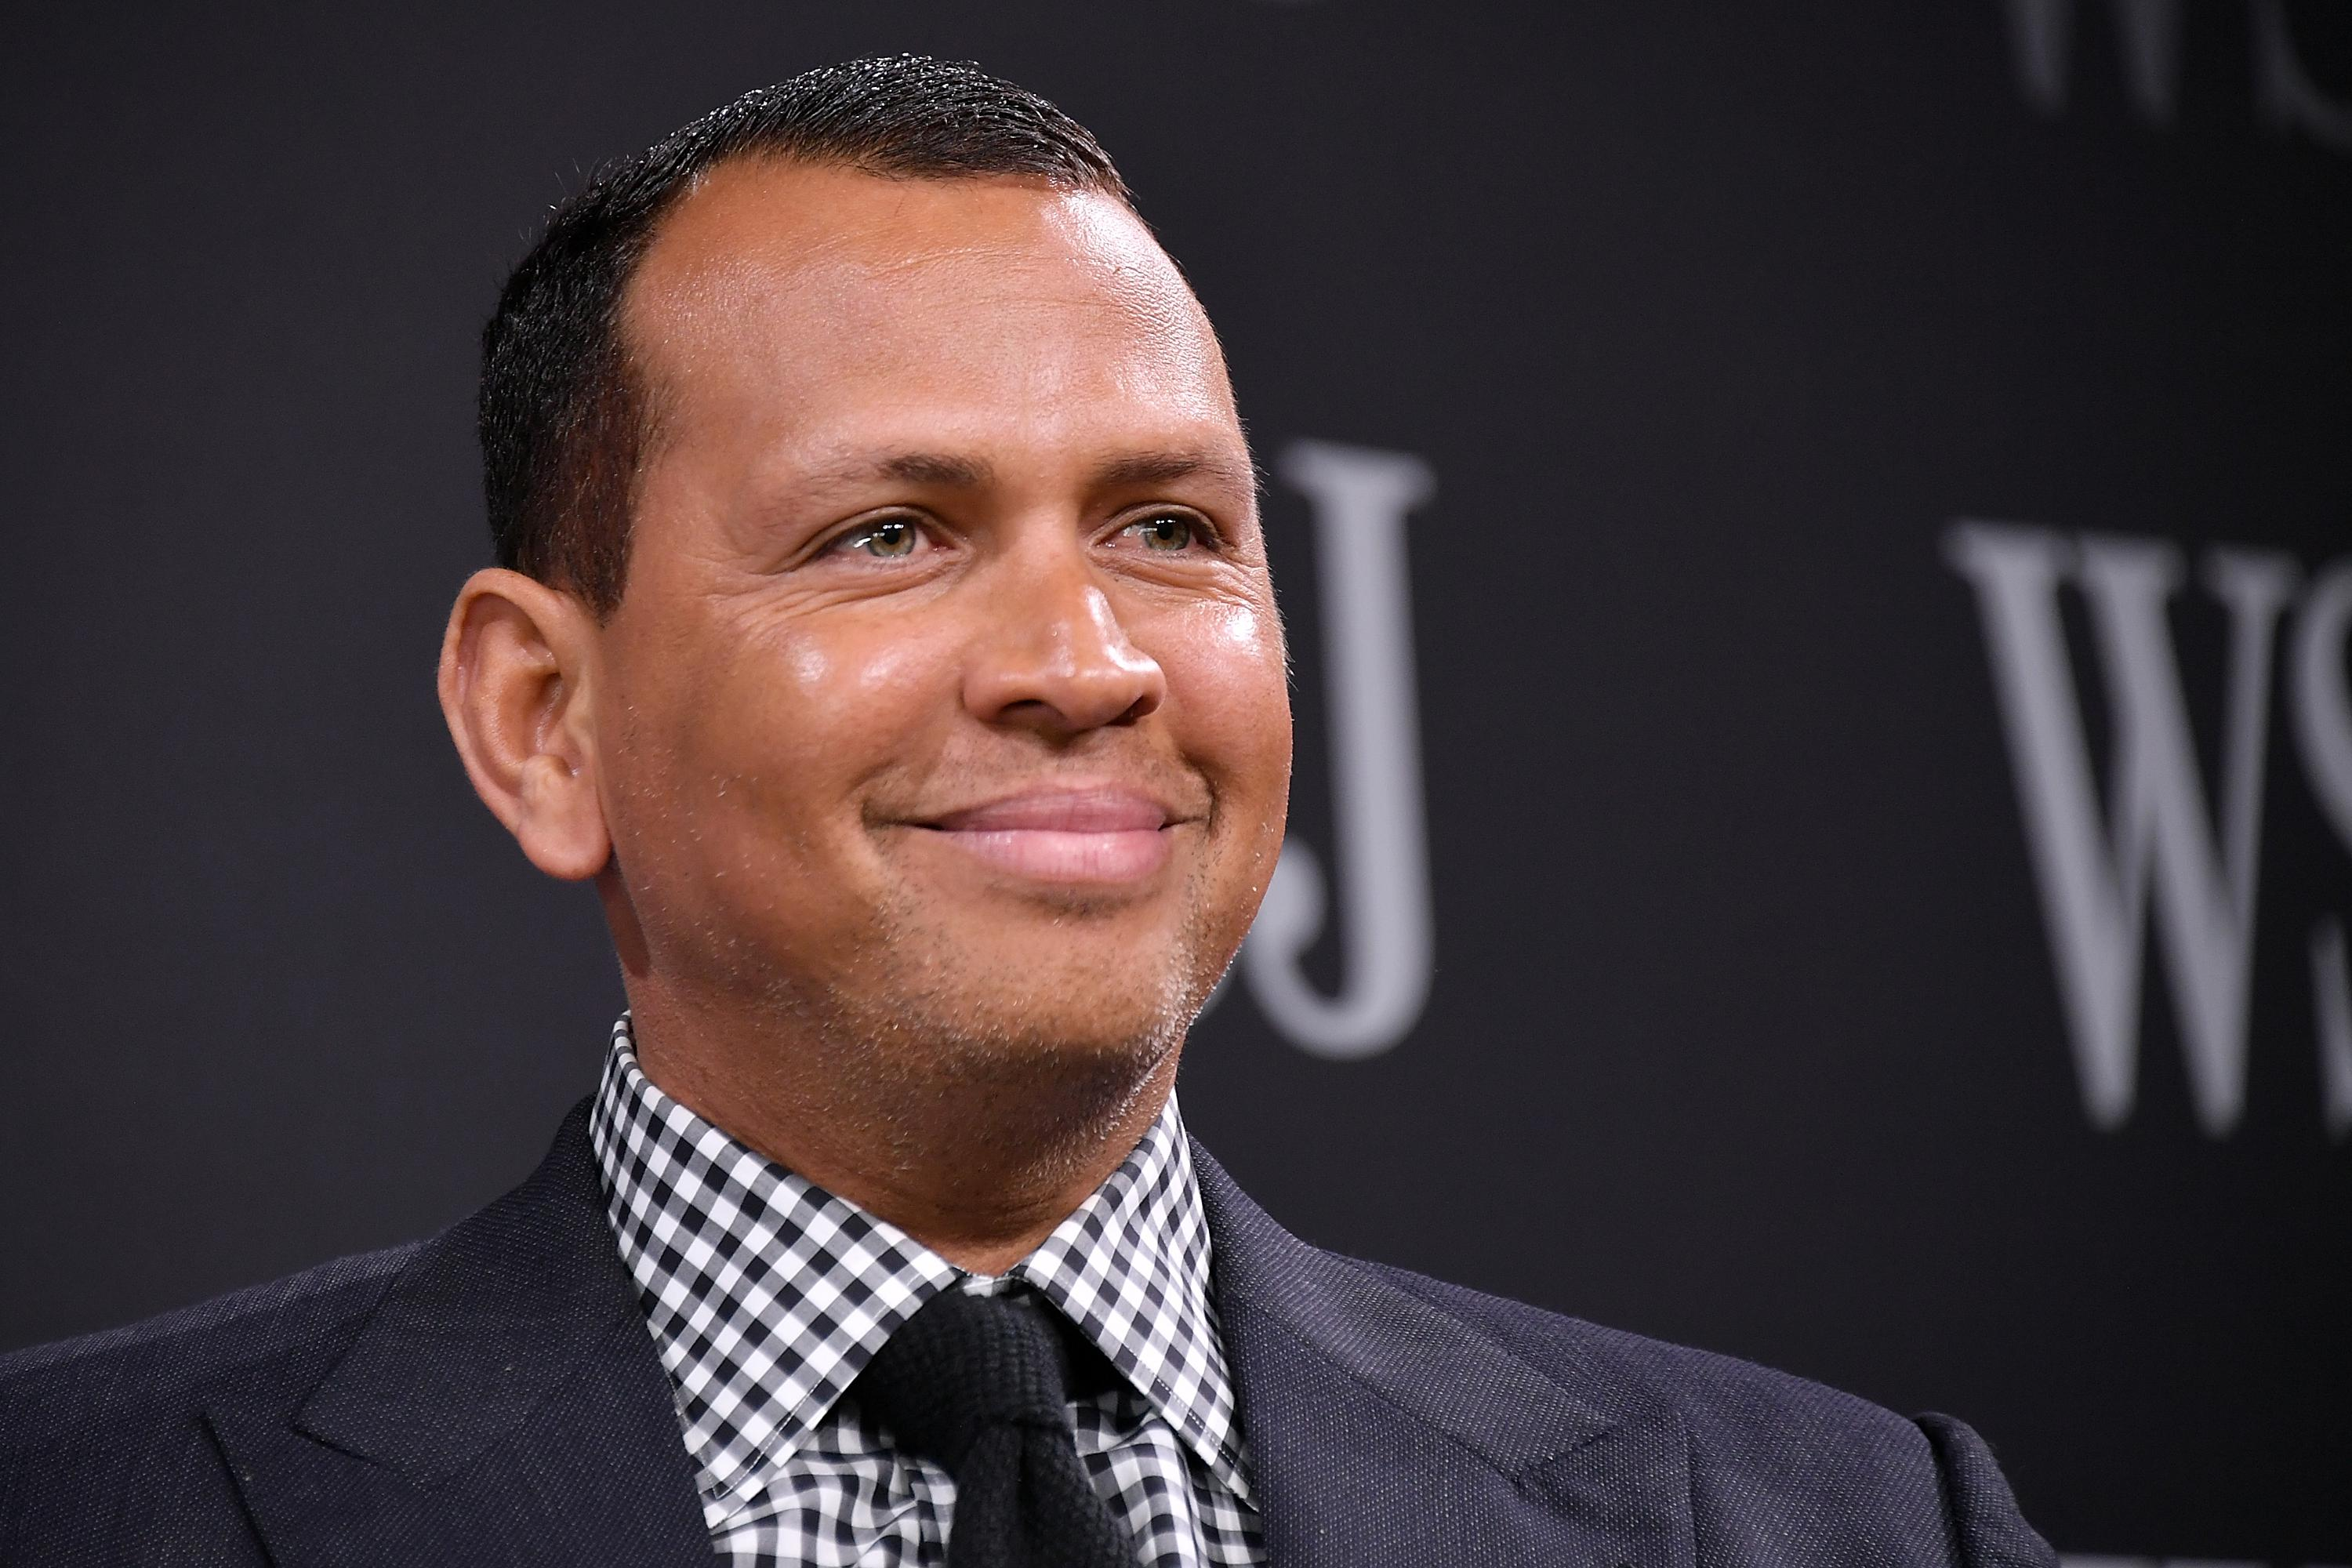 Alex Rodriguez smiles in a suit and tie while onstage at a Wall Street Journal event.